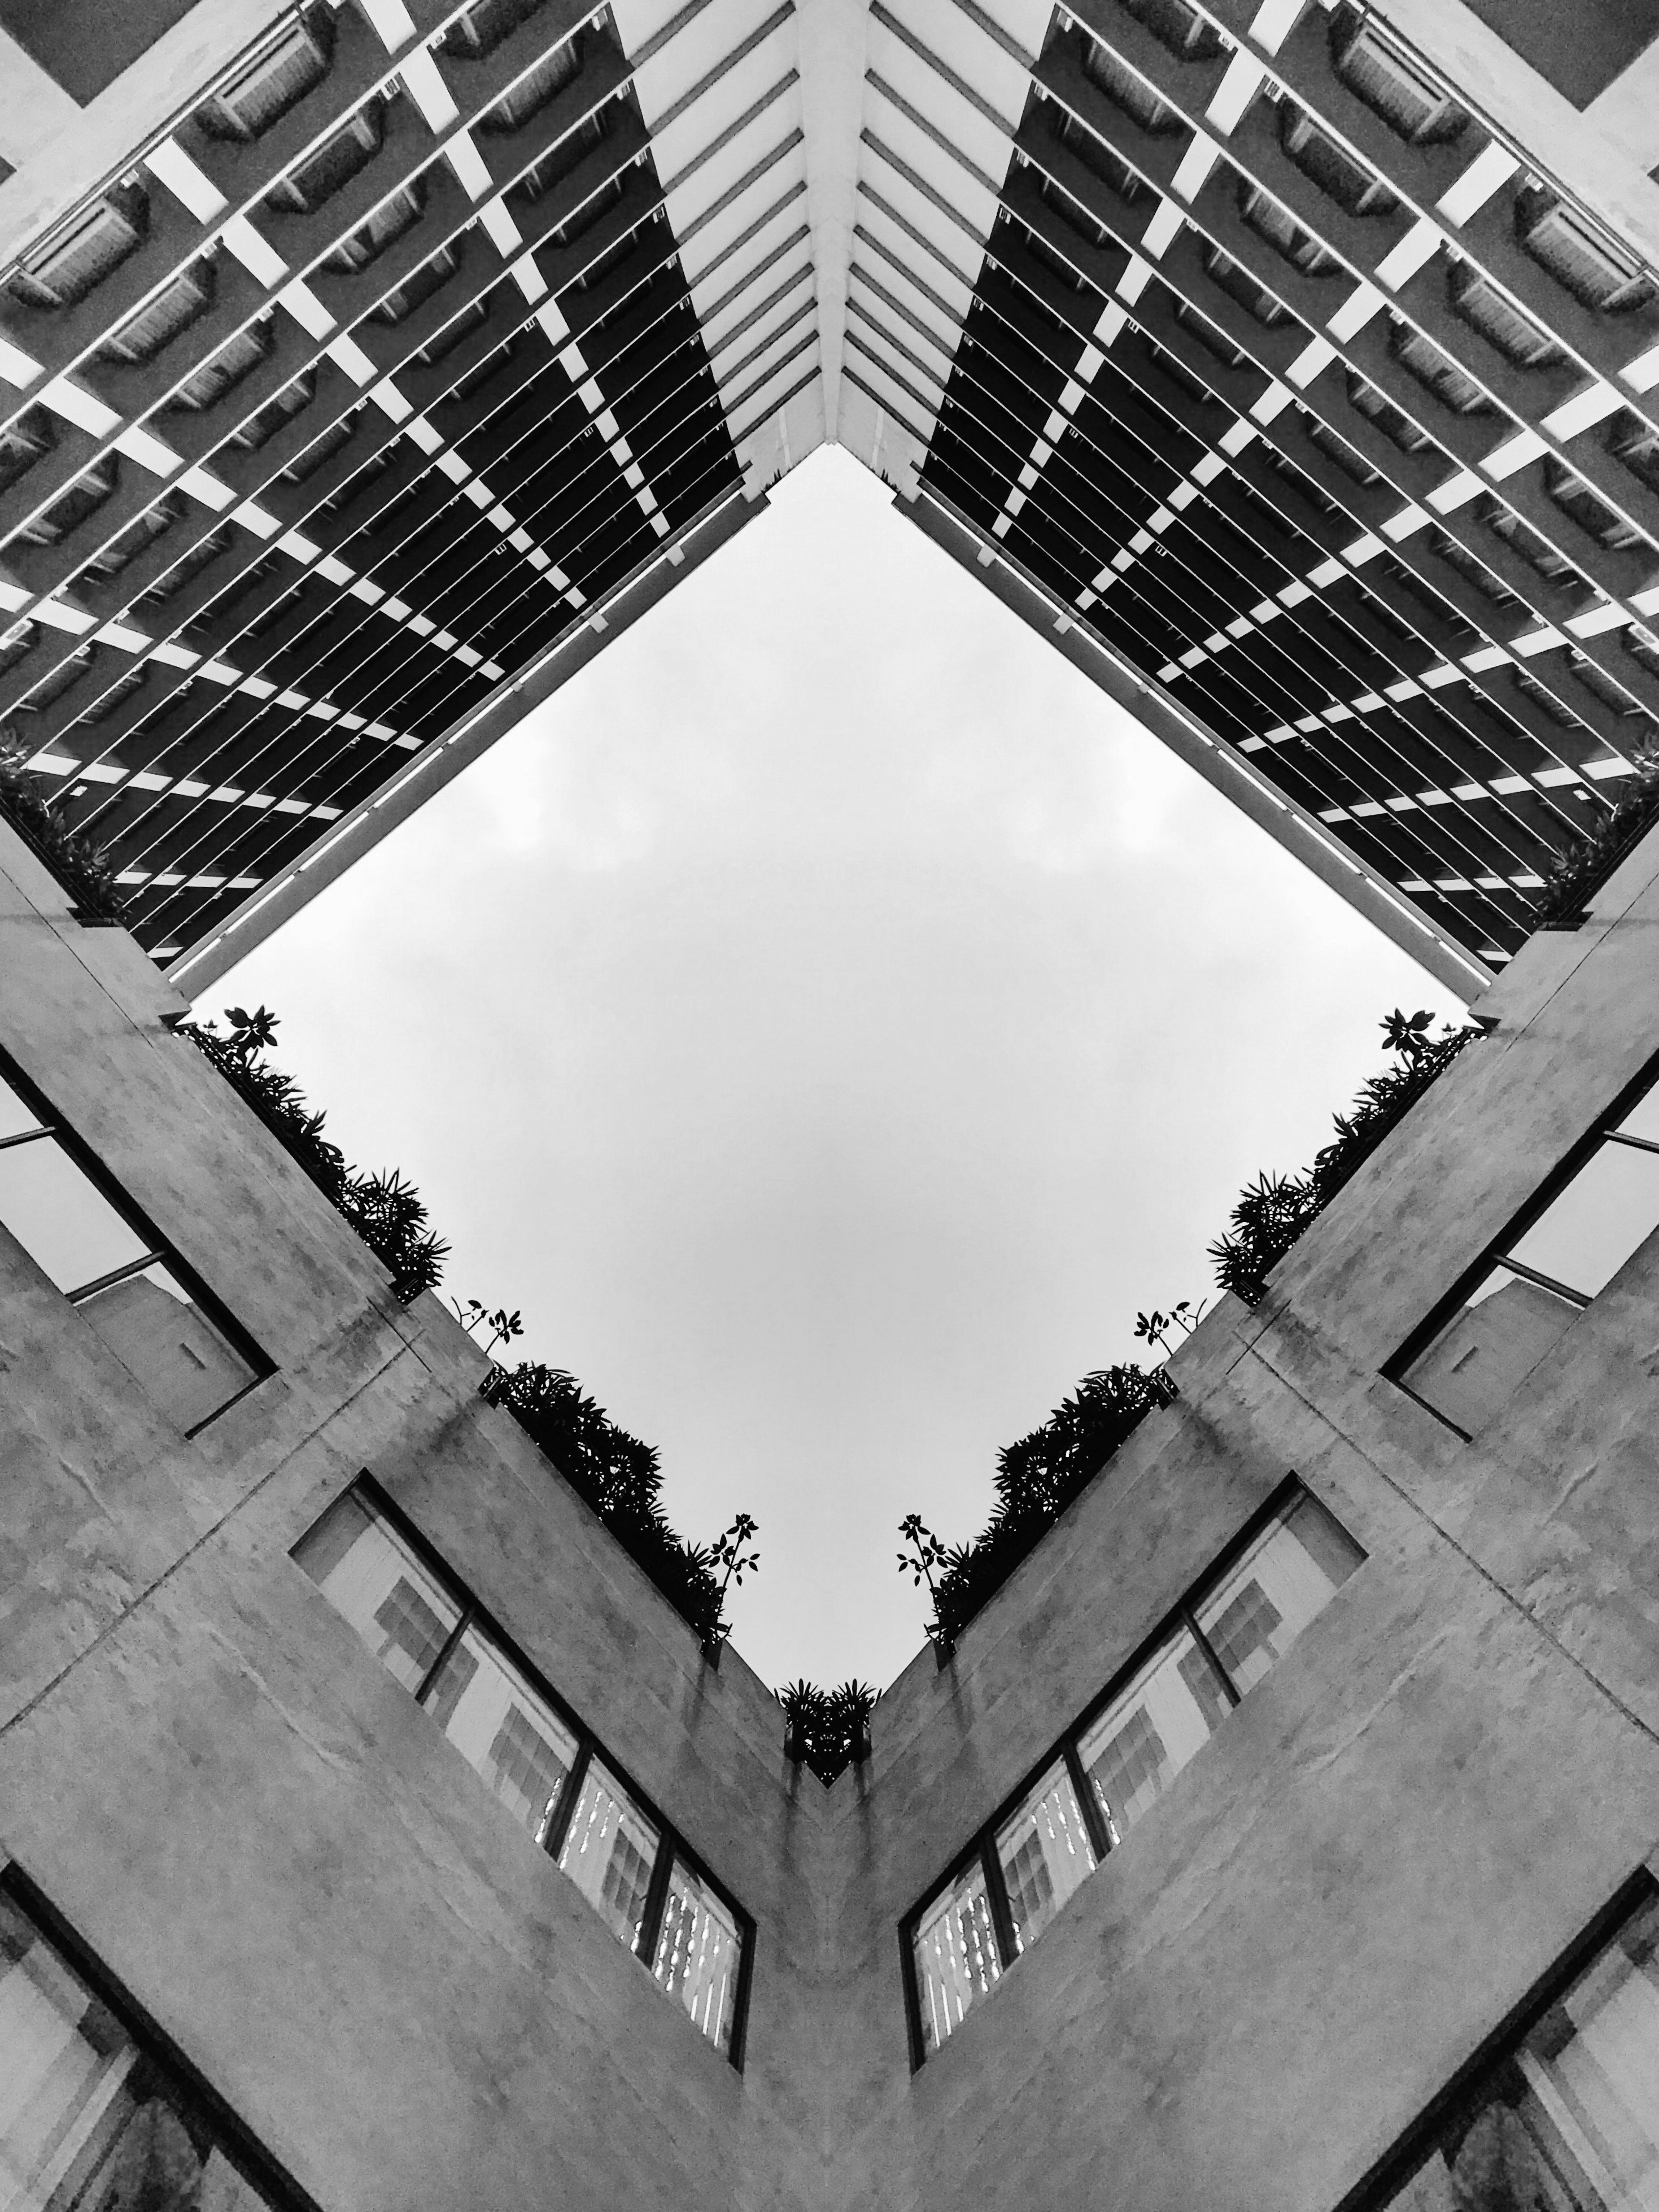 Gray high-rise building photo